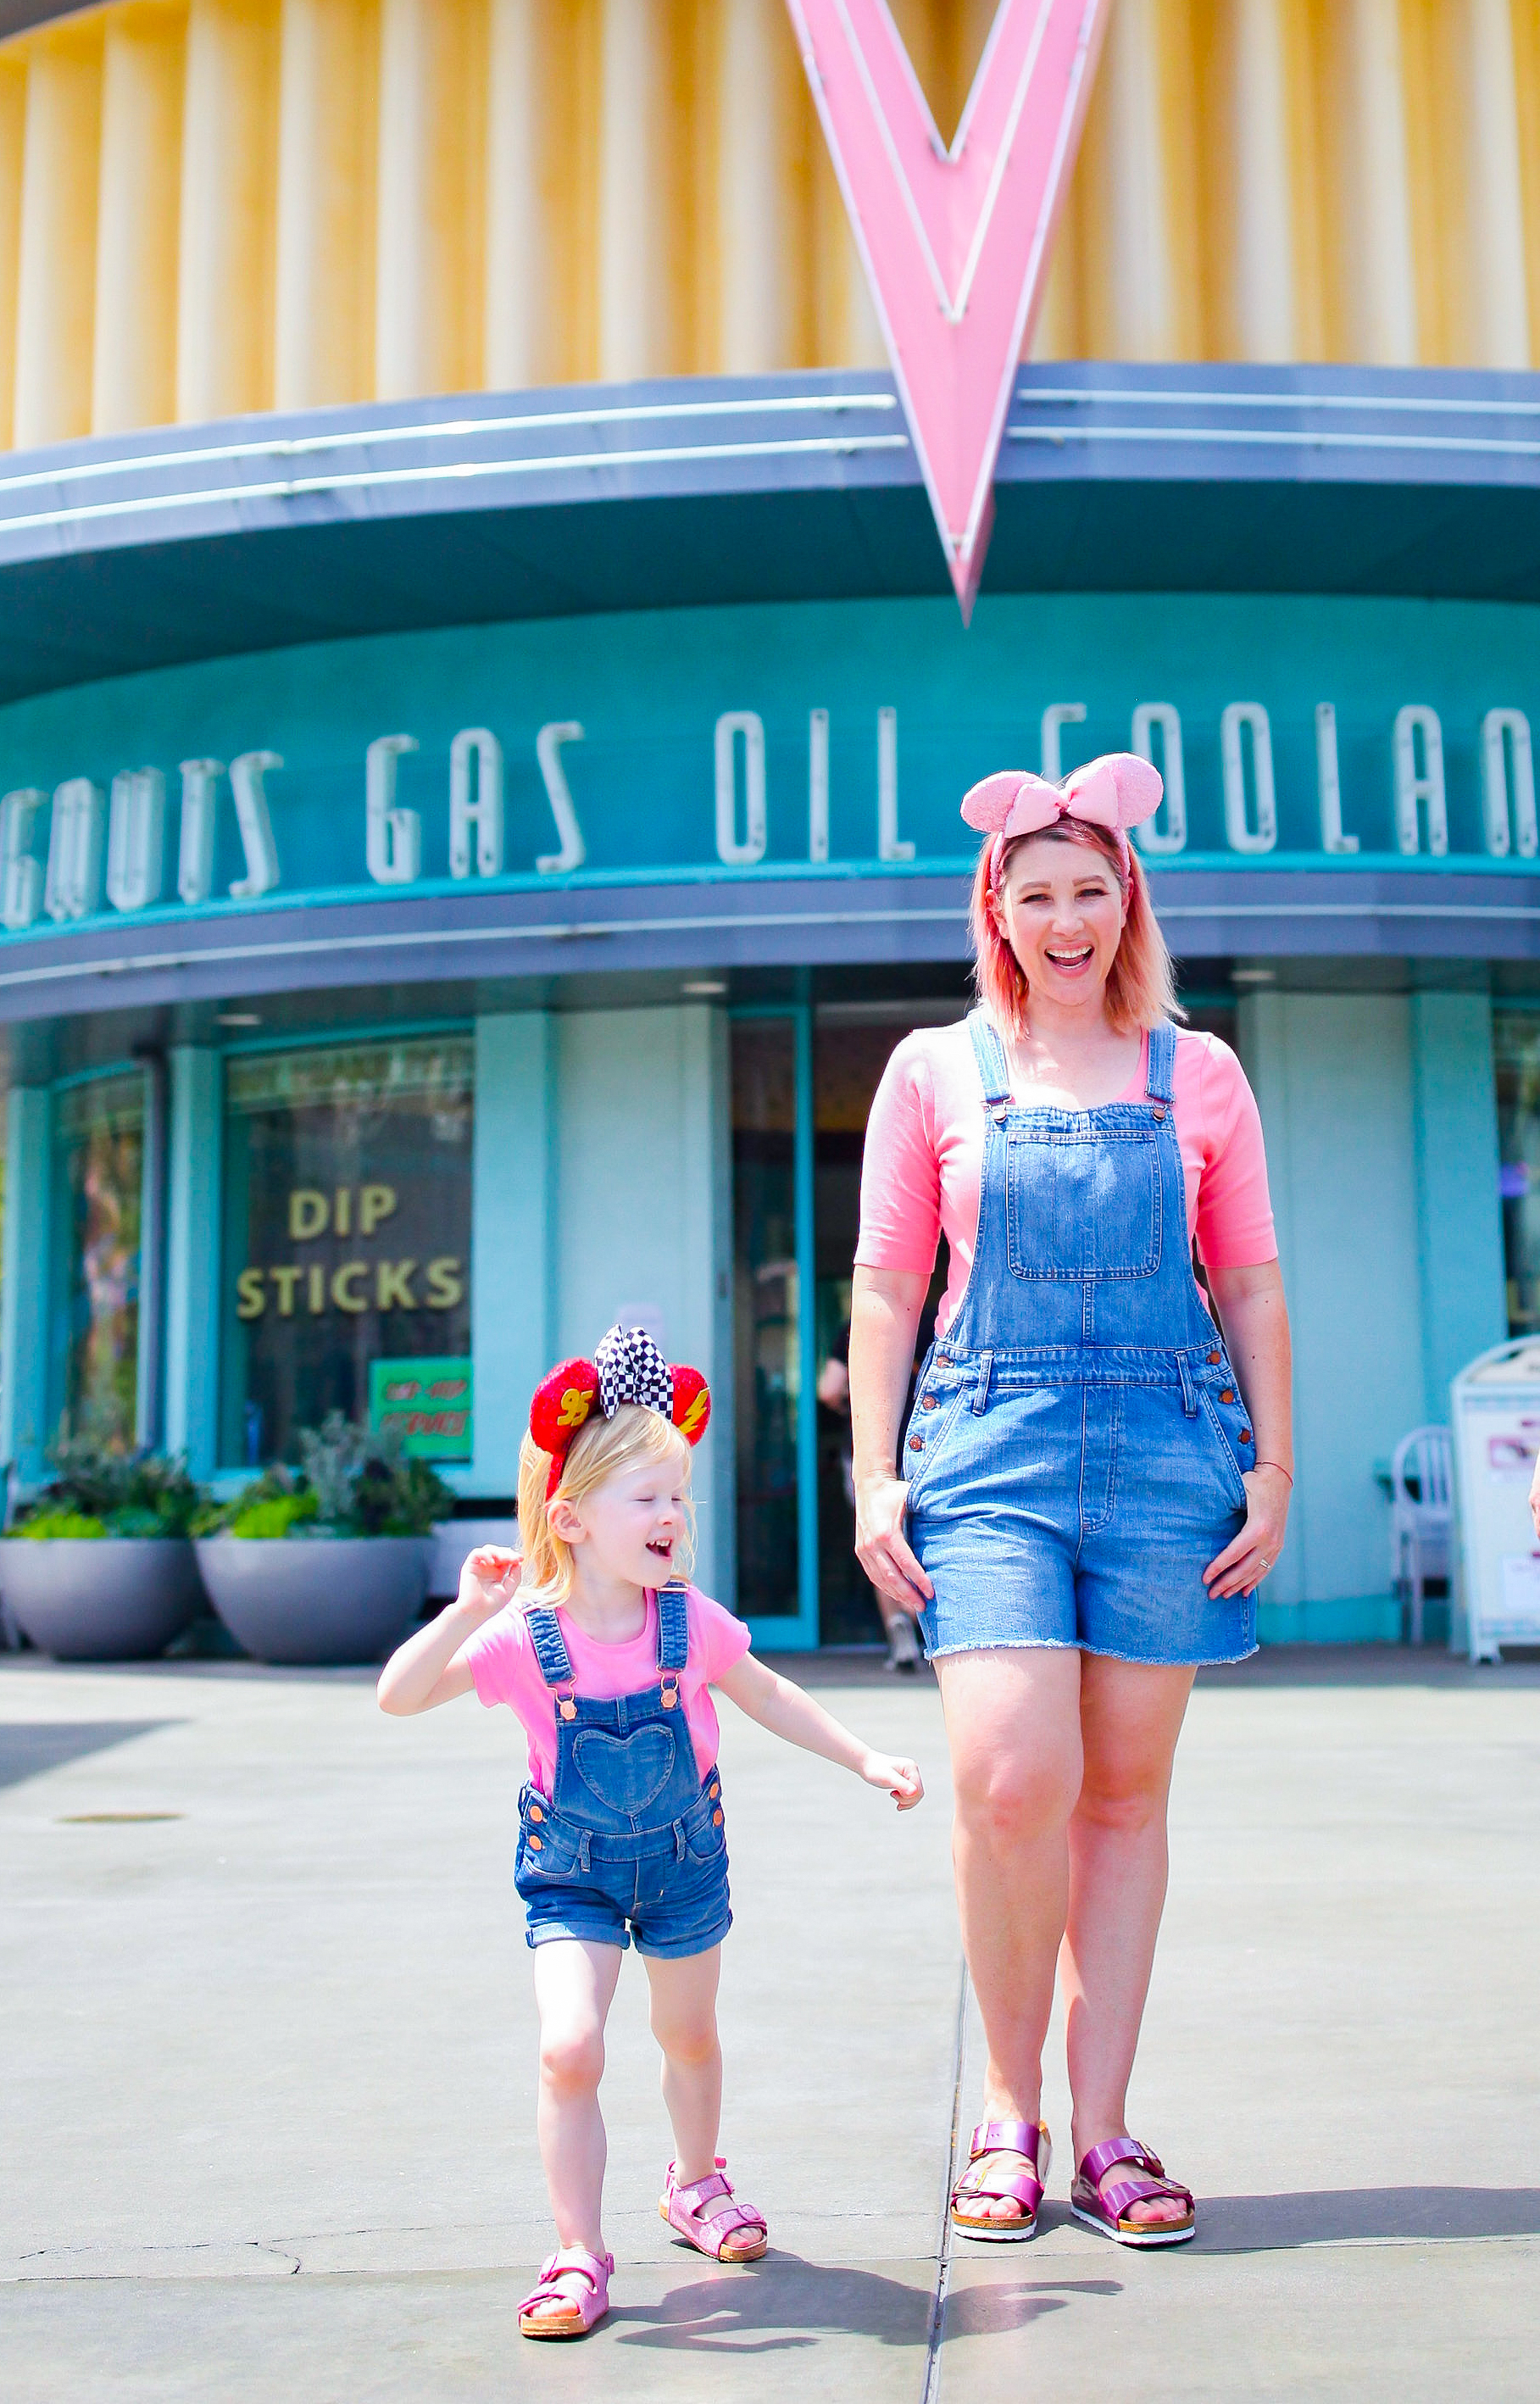 The Best Shoes for Disneyland: This post breaks down the perfect sandals for hot Disneyland Days!